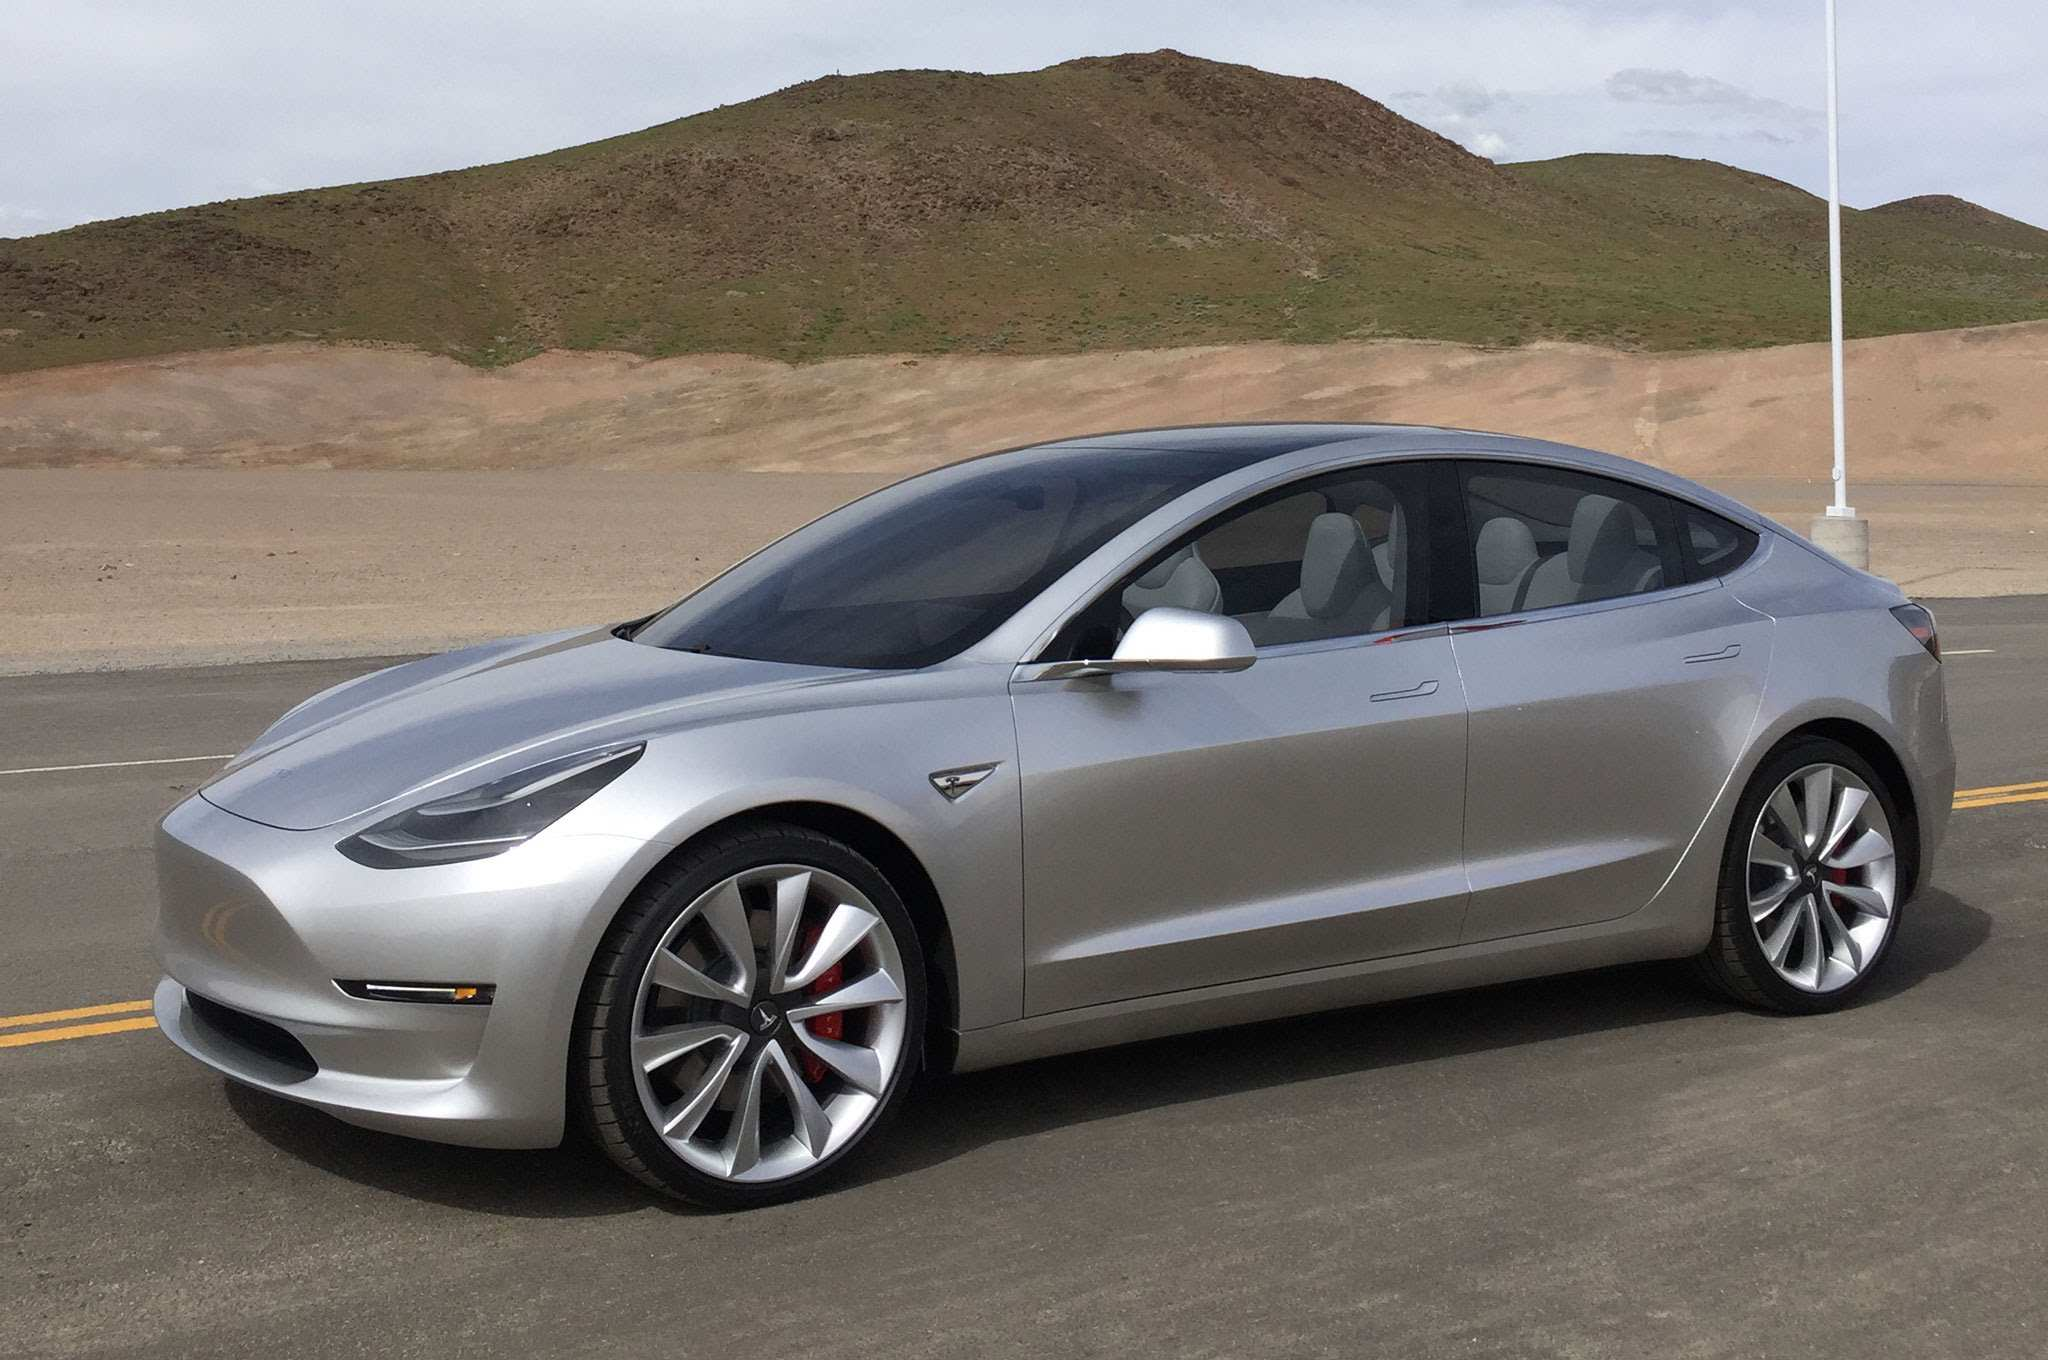 37 Concept of 2020 Tesla 3 New Concept by 2020 Tesla 3